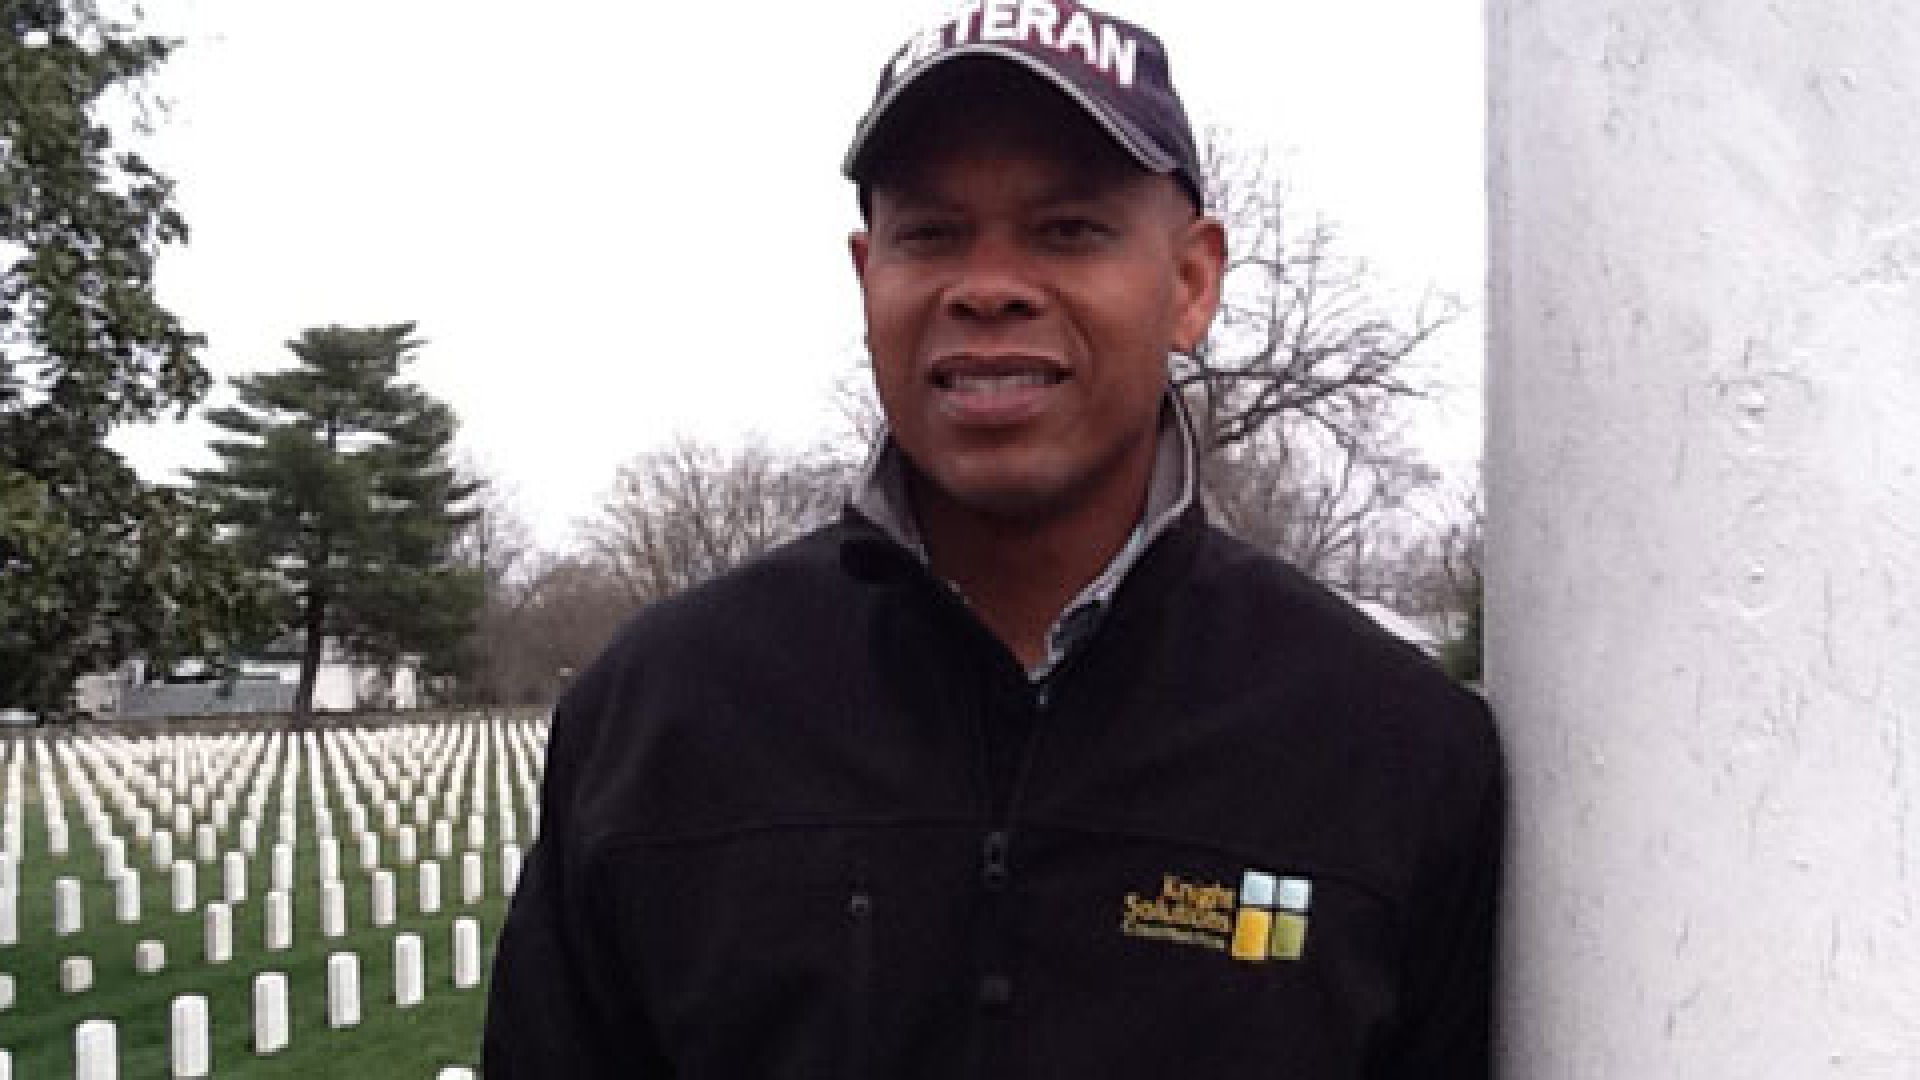 Kevin Knight is the founder and CEO of Knight Solutions, a construction company with the goal of hiring veterans to construct buildings, renovate cemeteries, and work on ground maintenance.